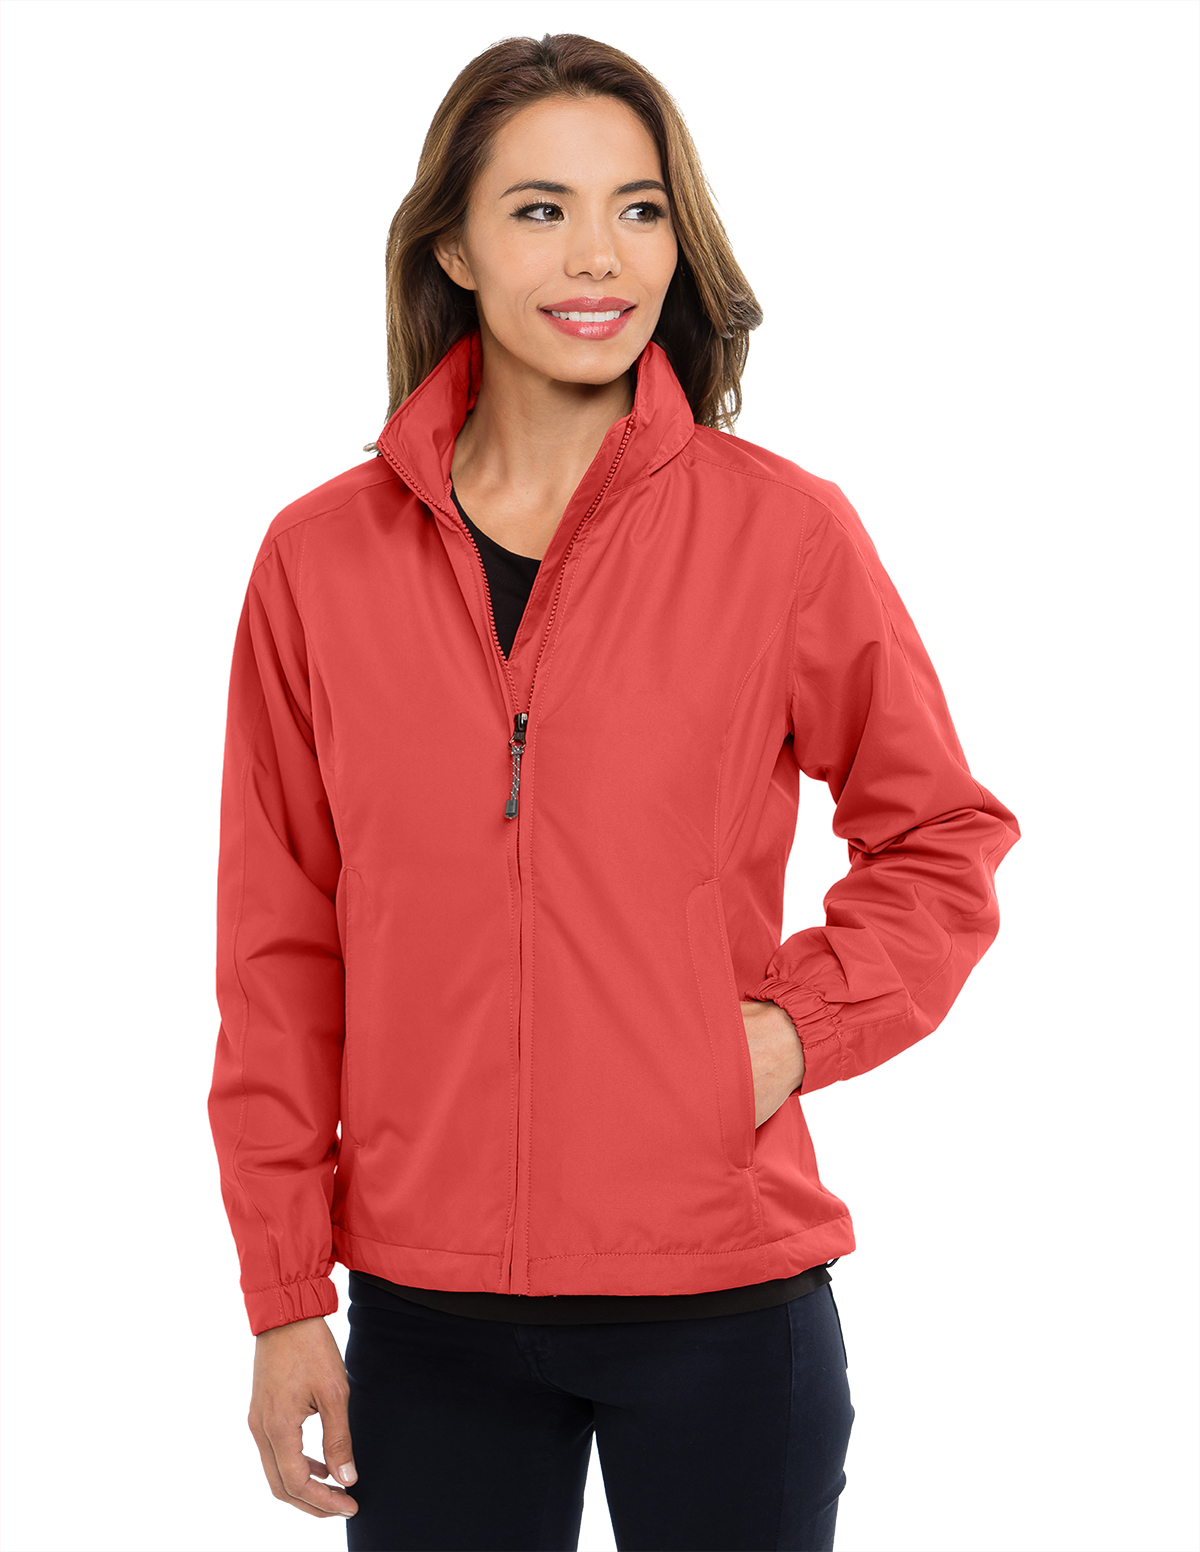 Navy Tri-Mountain 6013 Womens 100/% Polyester long sleeve jacket with water resistent 4XL